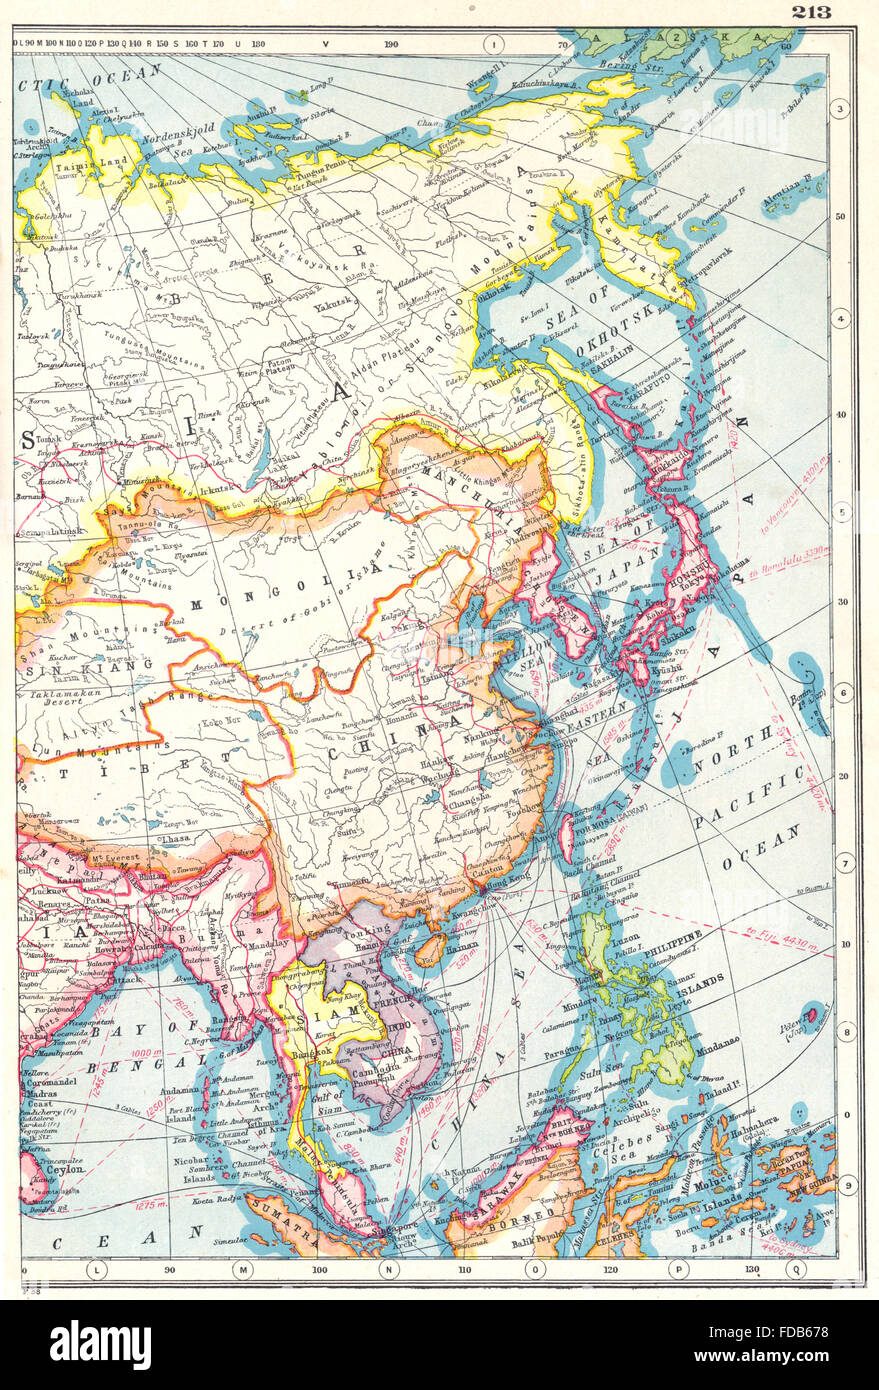 Map china philippines stock photos map china philippines stock east asia china philippines japan korea siam french indochina malaya 1920 map stock gumiabroncs Choice Image